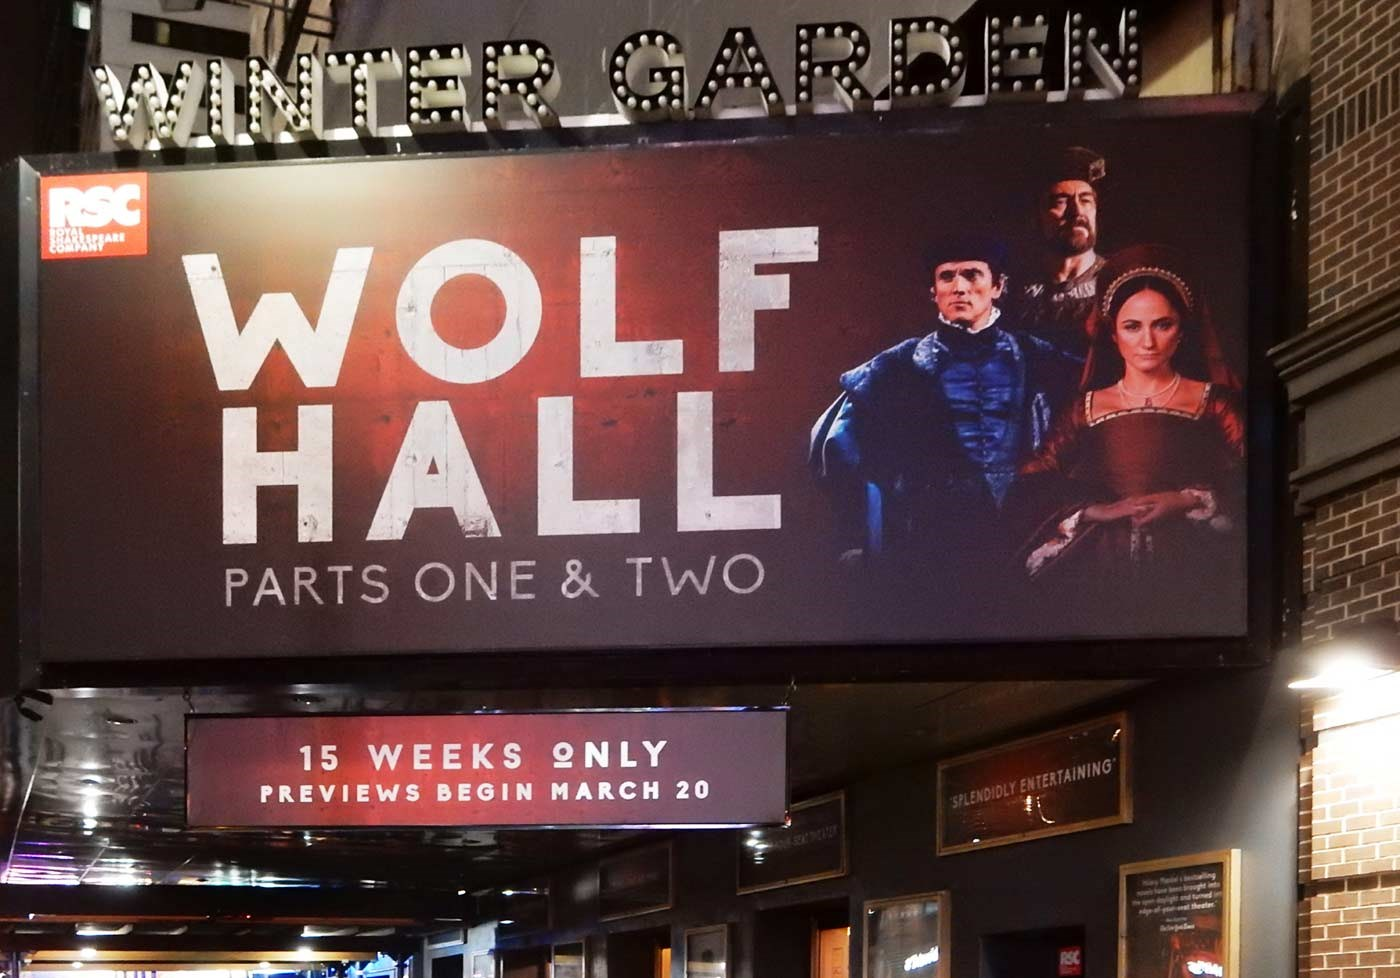 'Wolf Hall' Tickets Now on Sale!